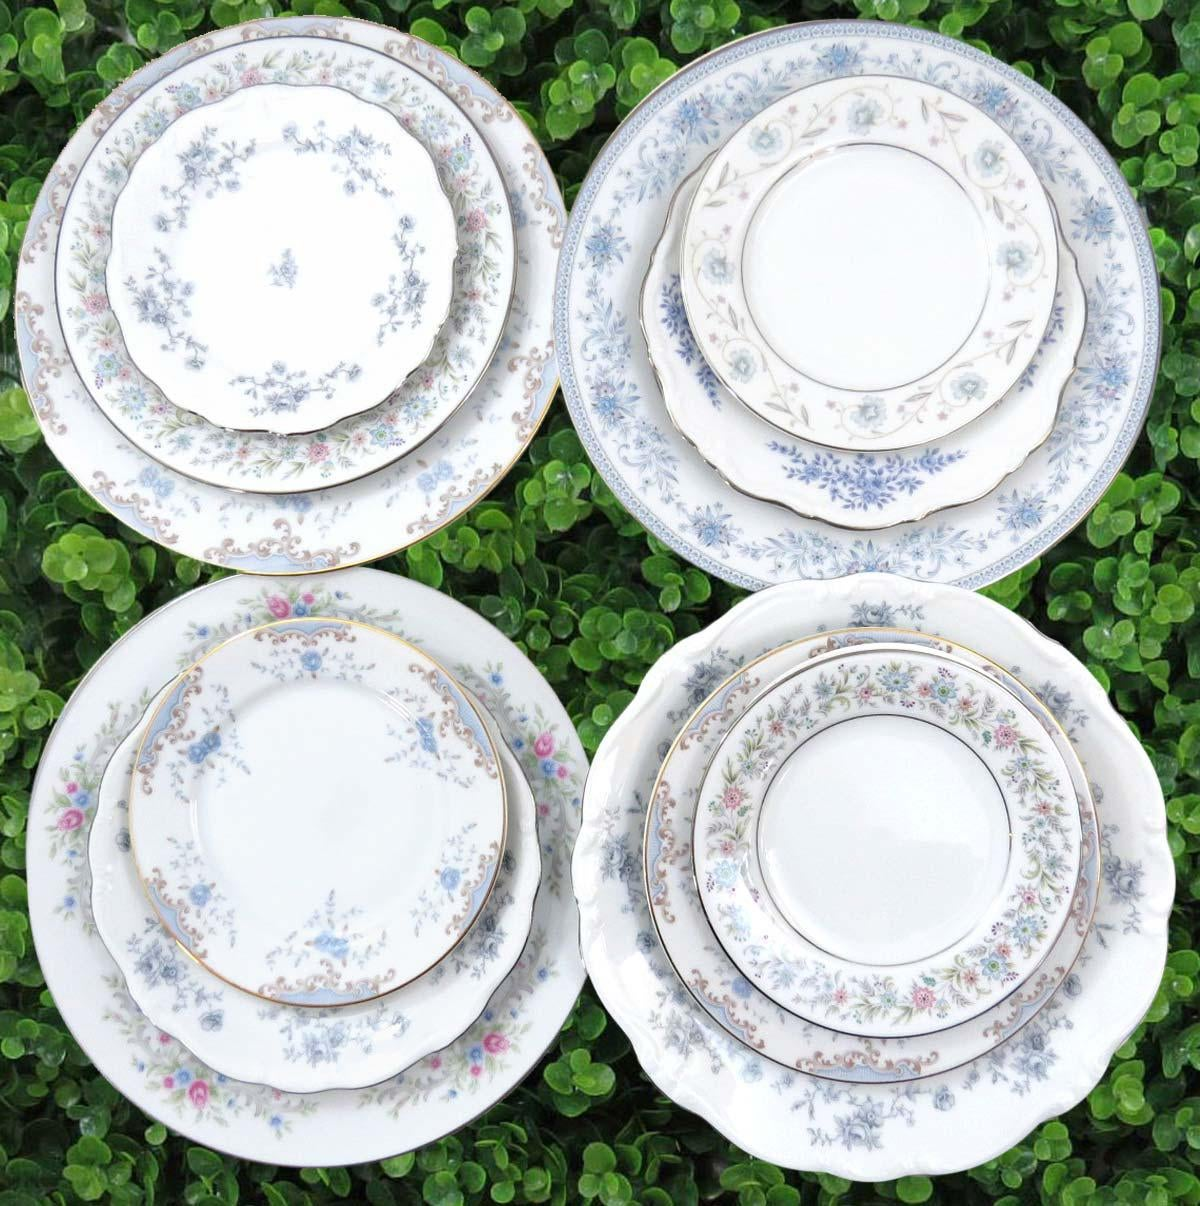 Vintage Mismatched Fine China Dinnerware Set - Service for 4 - Image 2 of 11  sc 1 st  Chairish & Vintage Mismatched Fine China Dinnerware Set - Service for 4 | Chairish